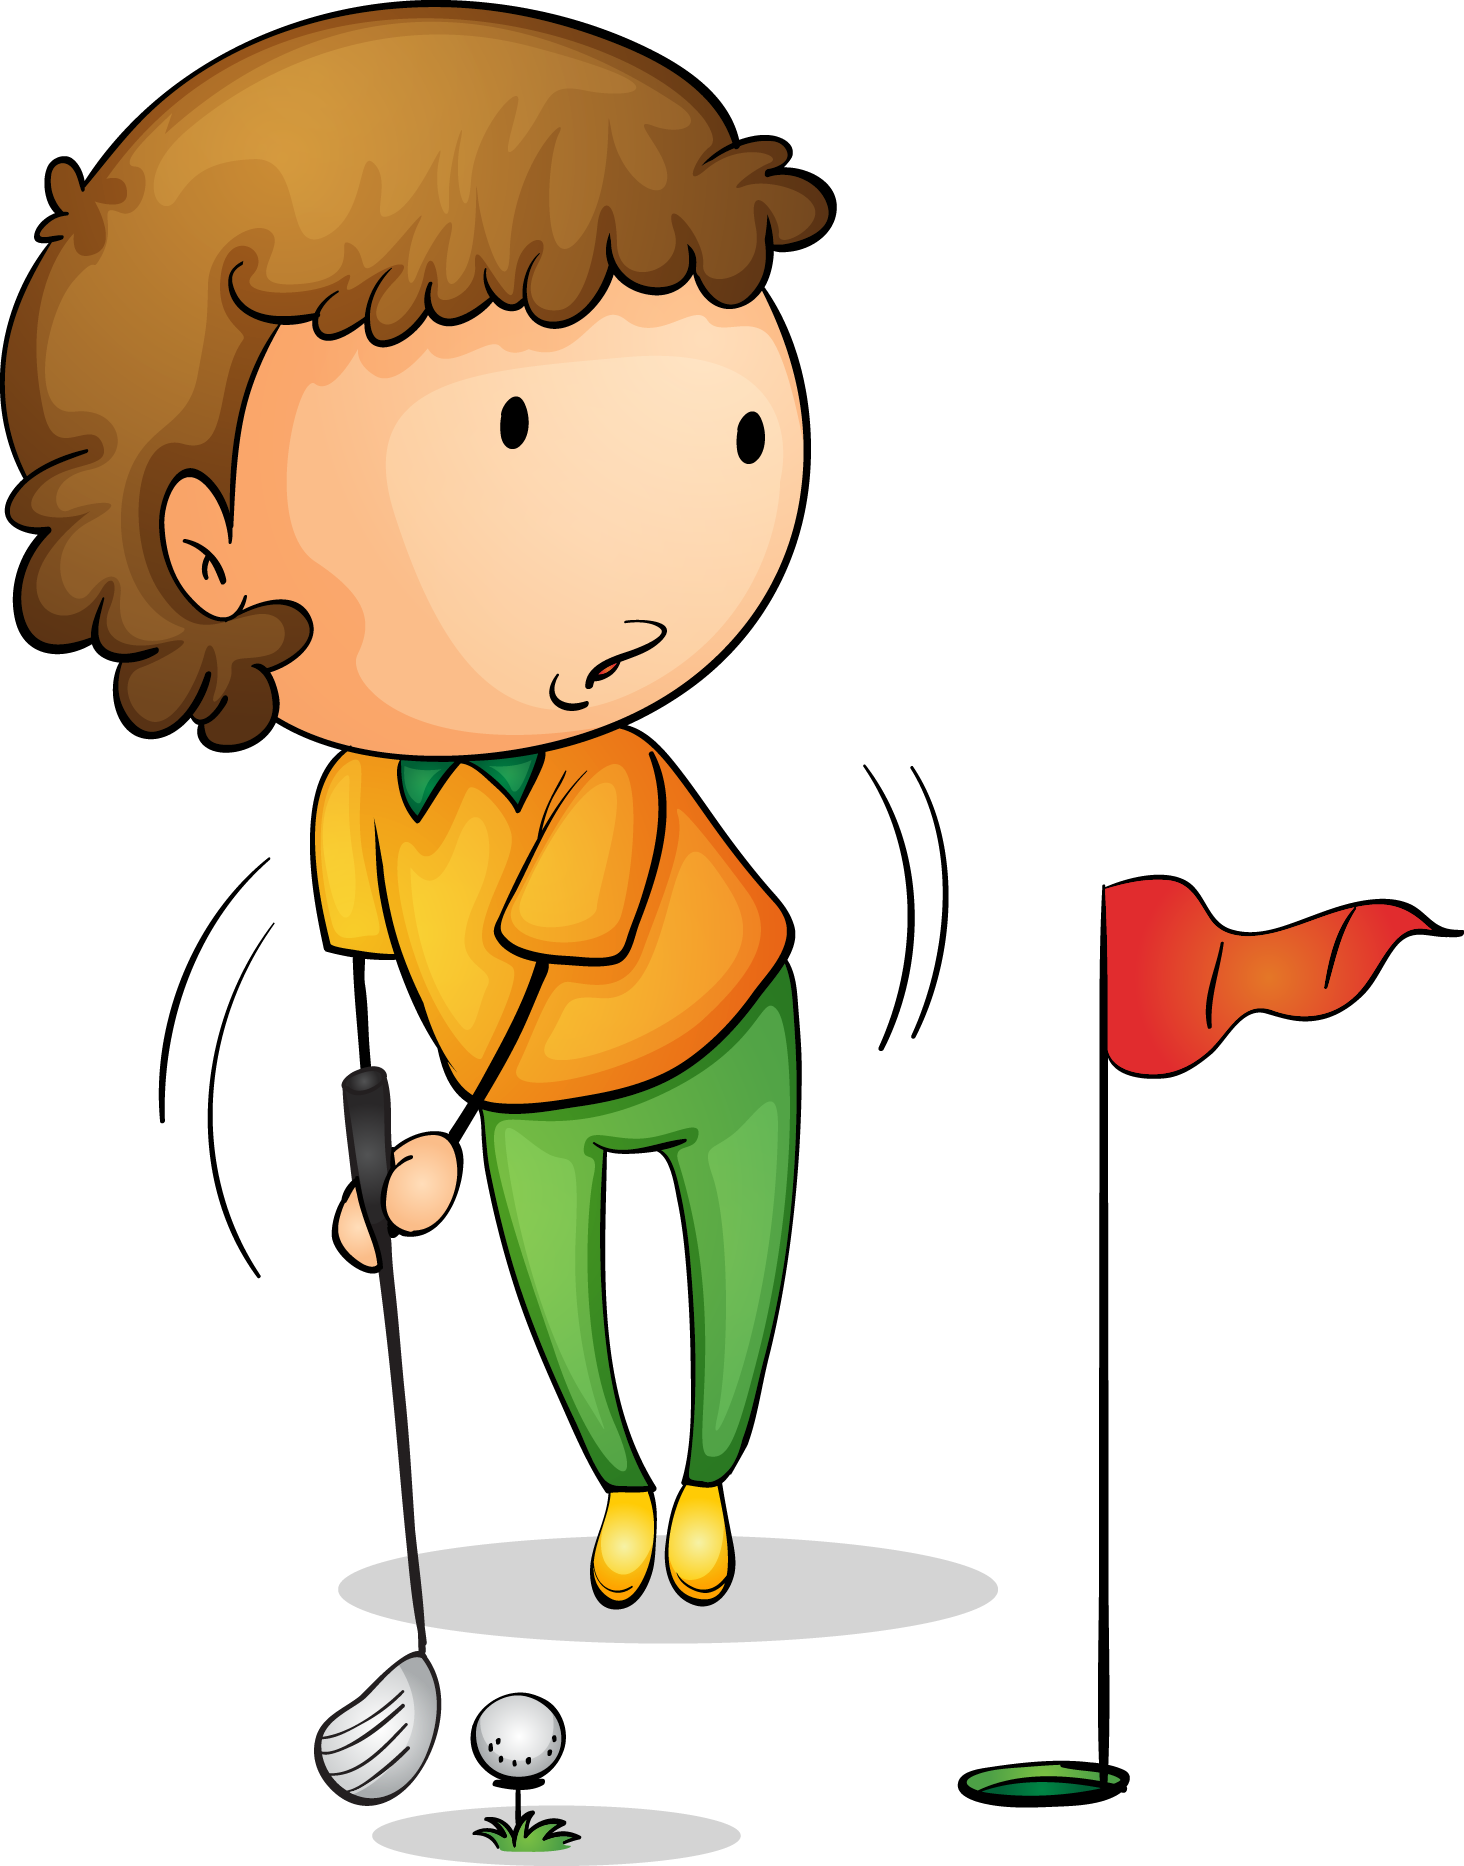 Golfing clipart child. Golf royalty free hole